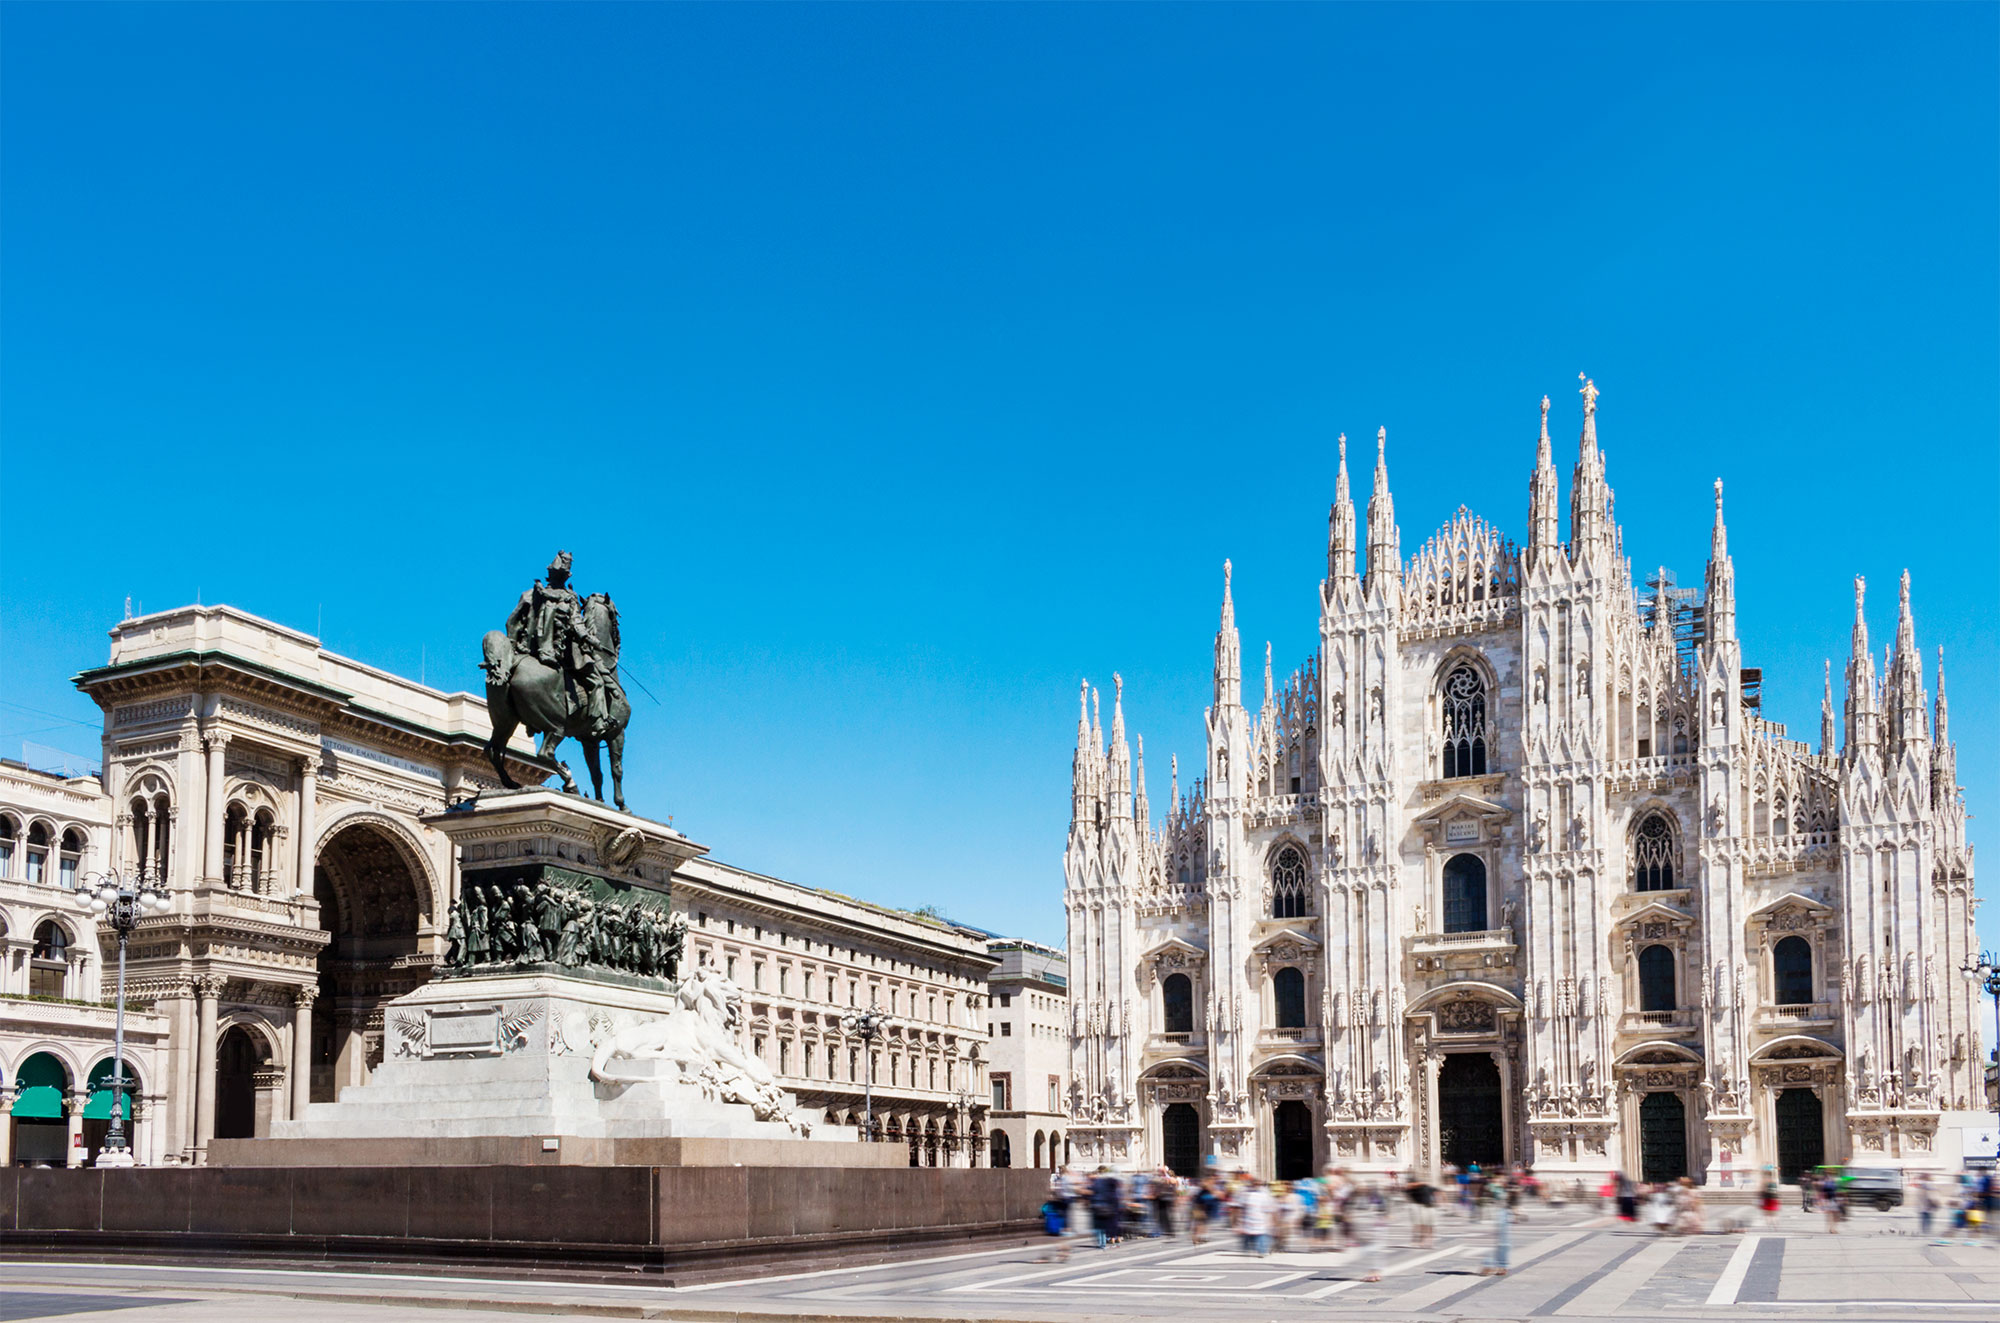 Duomo square with statue of Victor Emanuel 2nd. Milan, Italy.